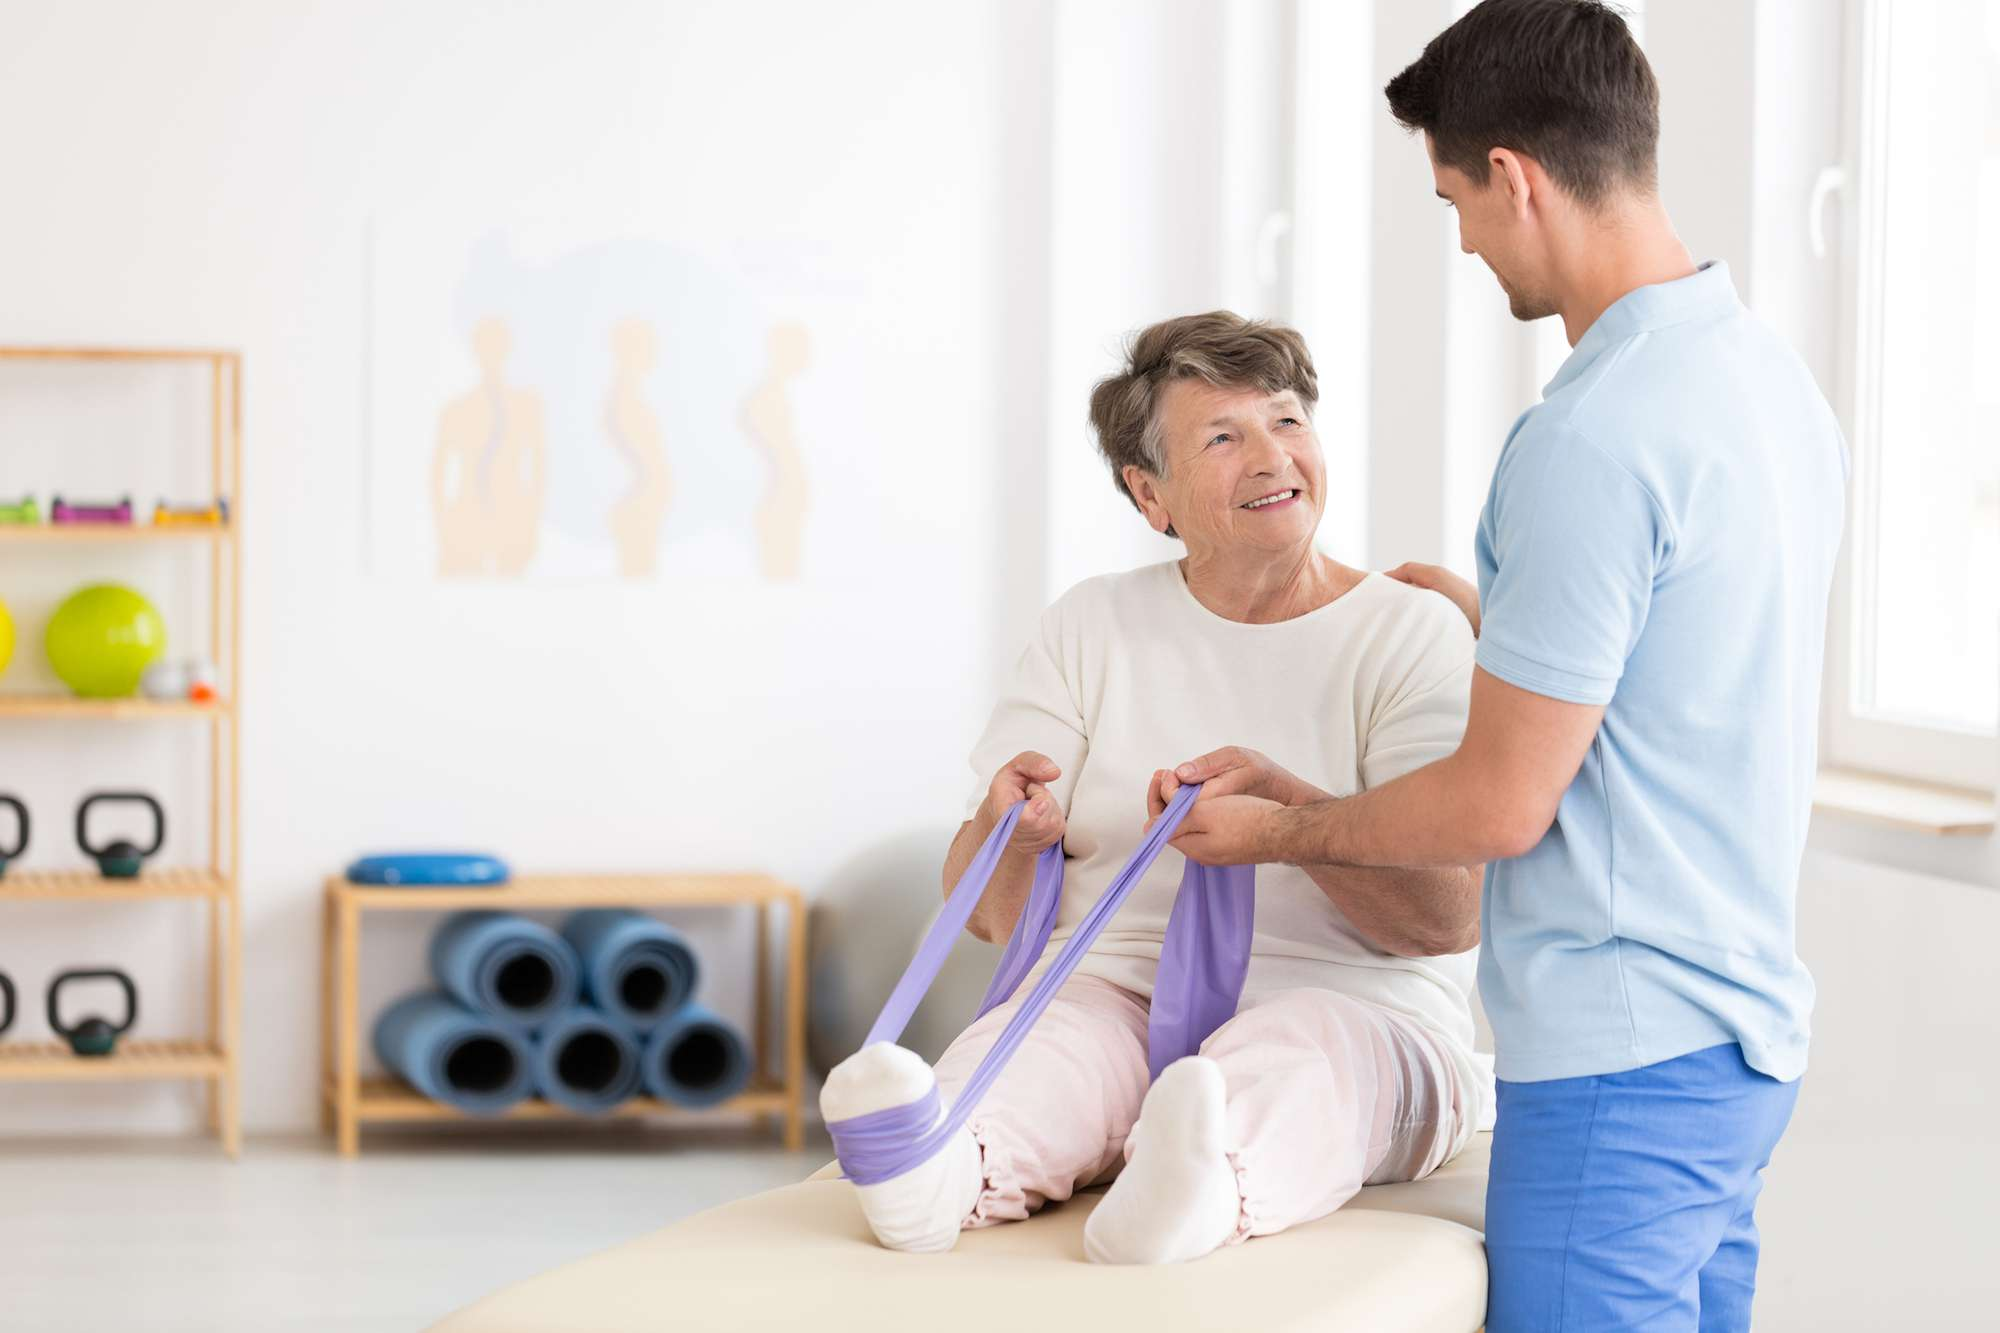 Woman going through physical therapy with doctor